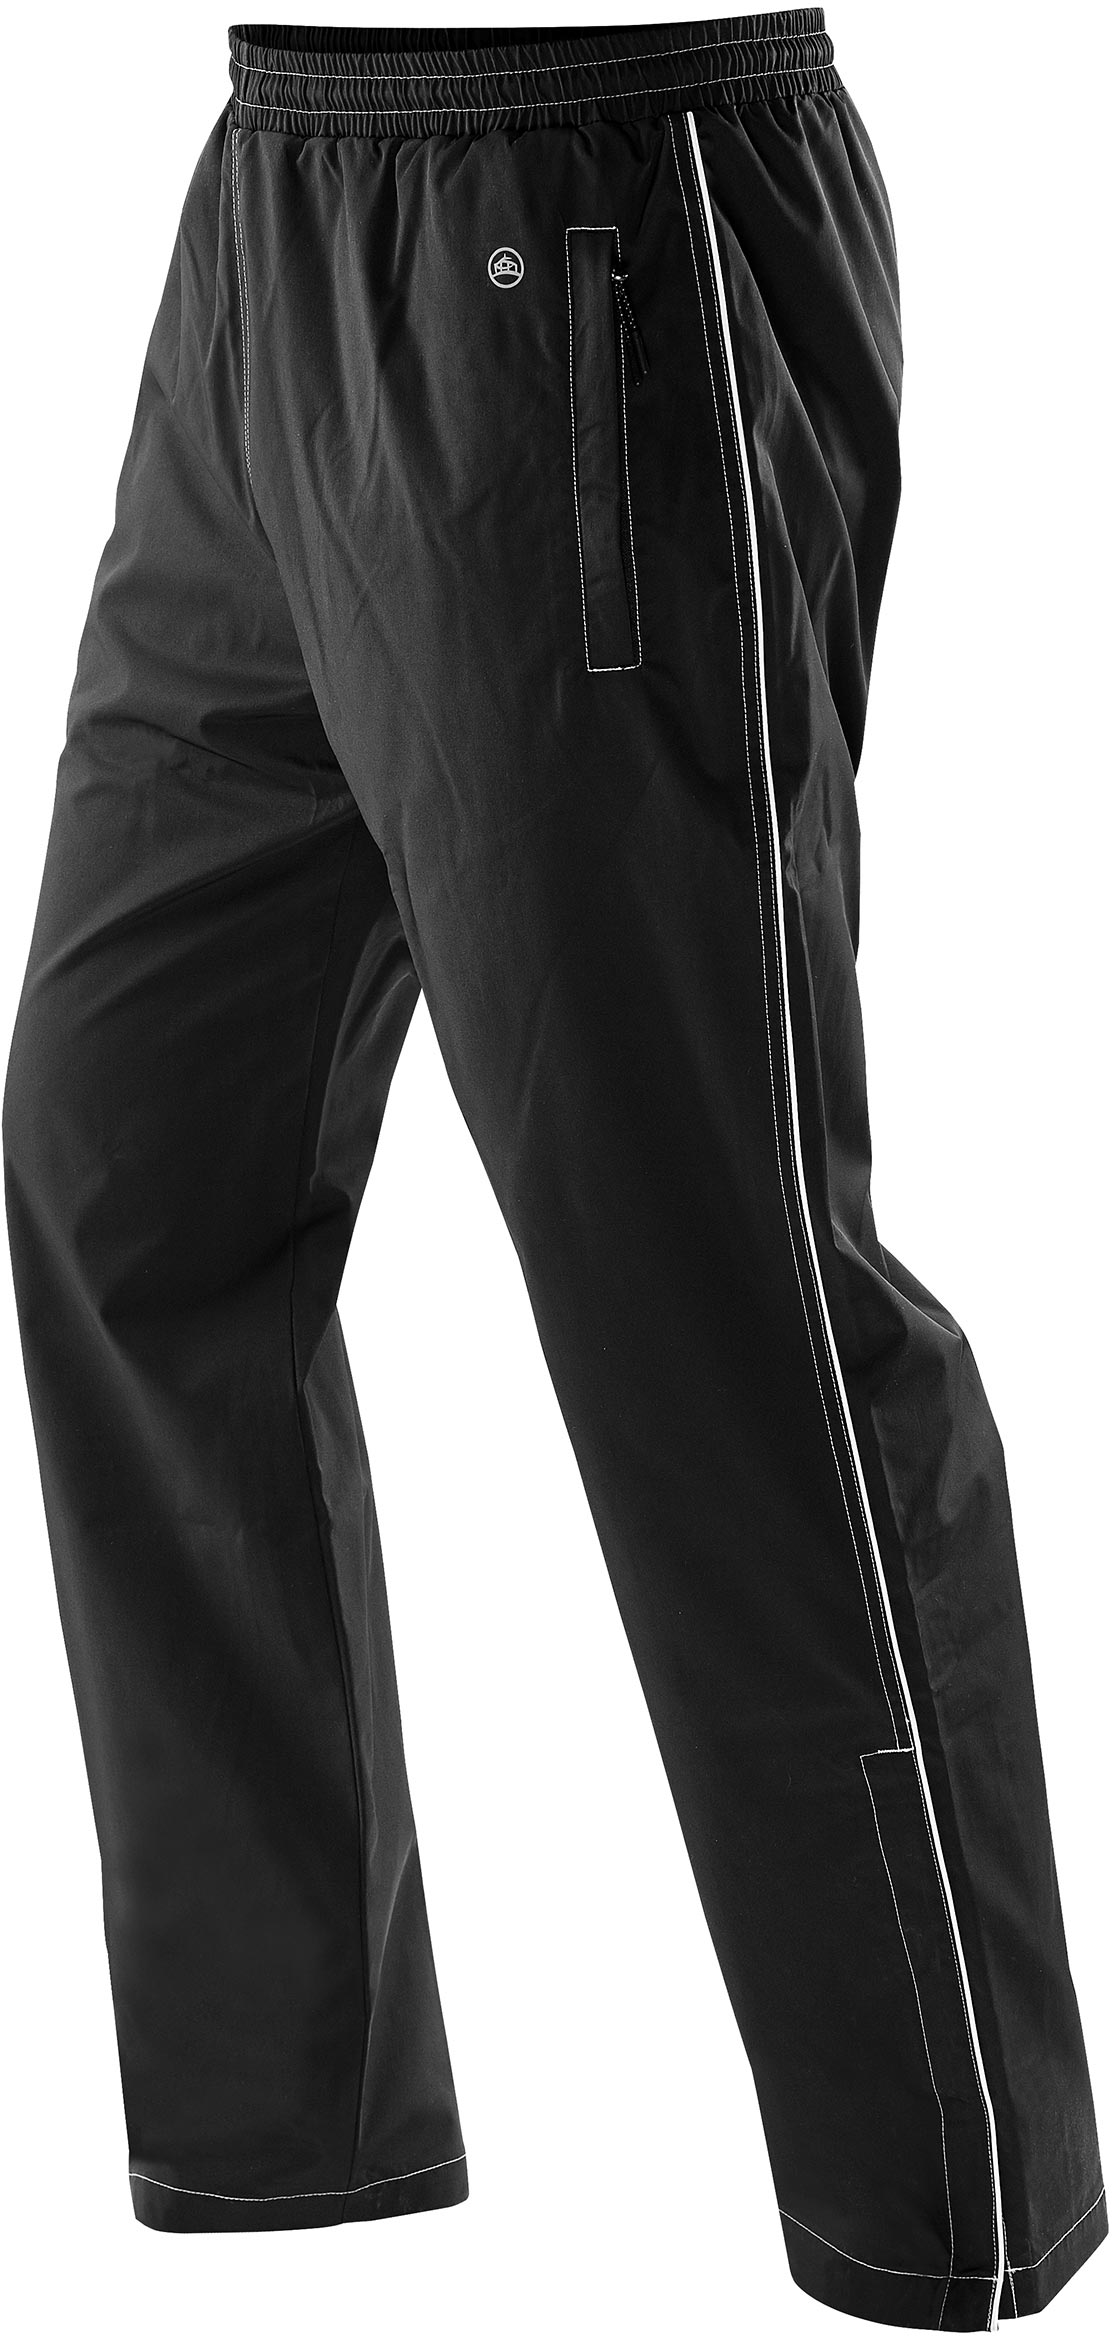 Stormtech STXP-2 - Men's Warrior Training Pant